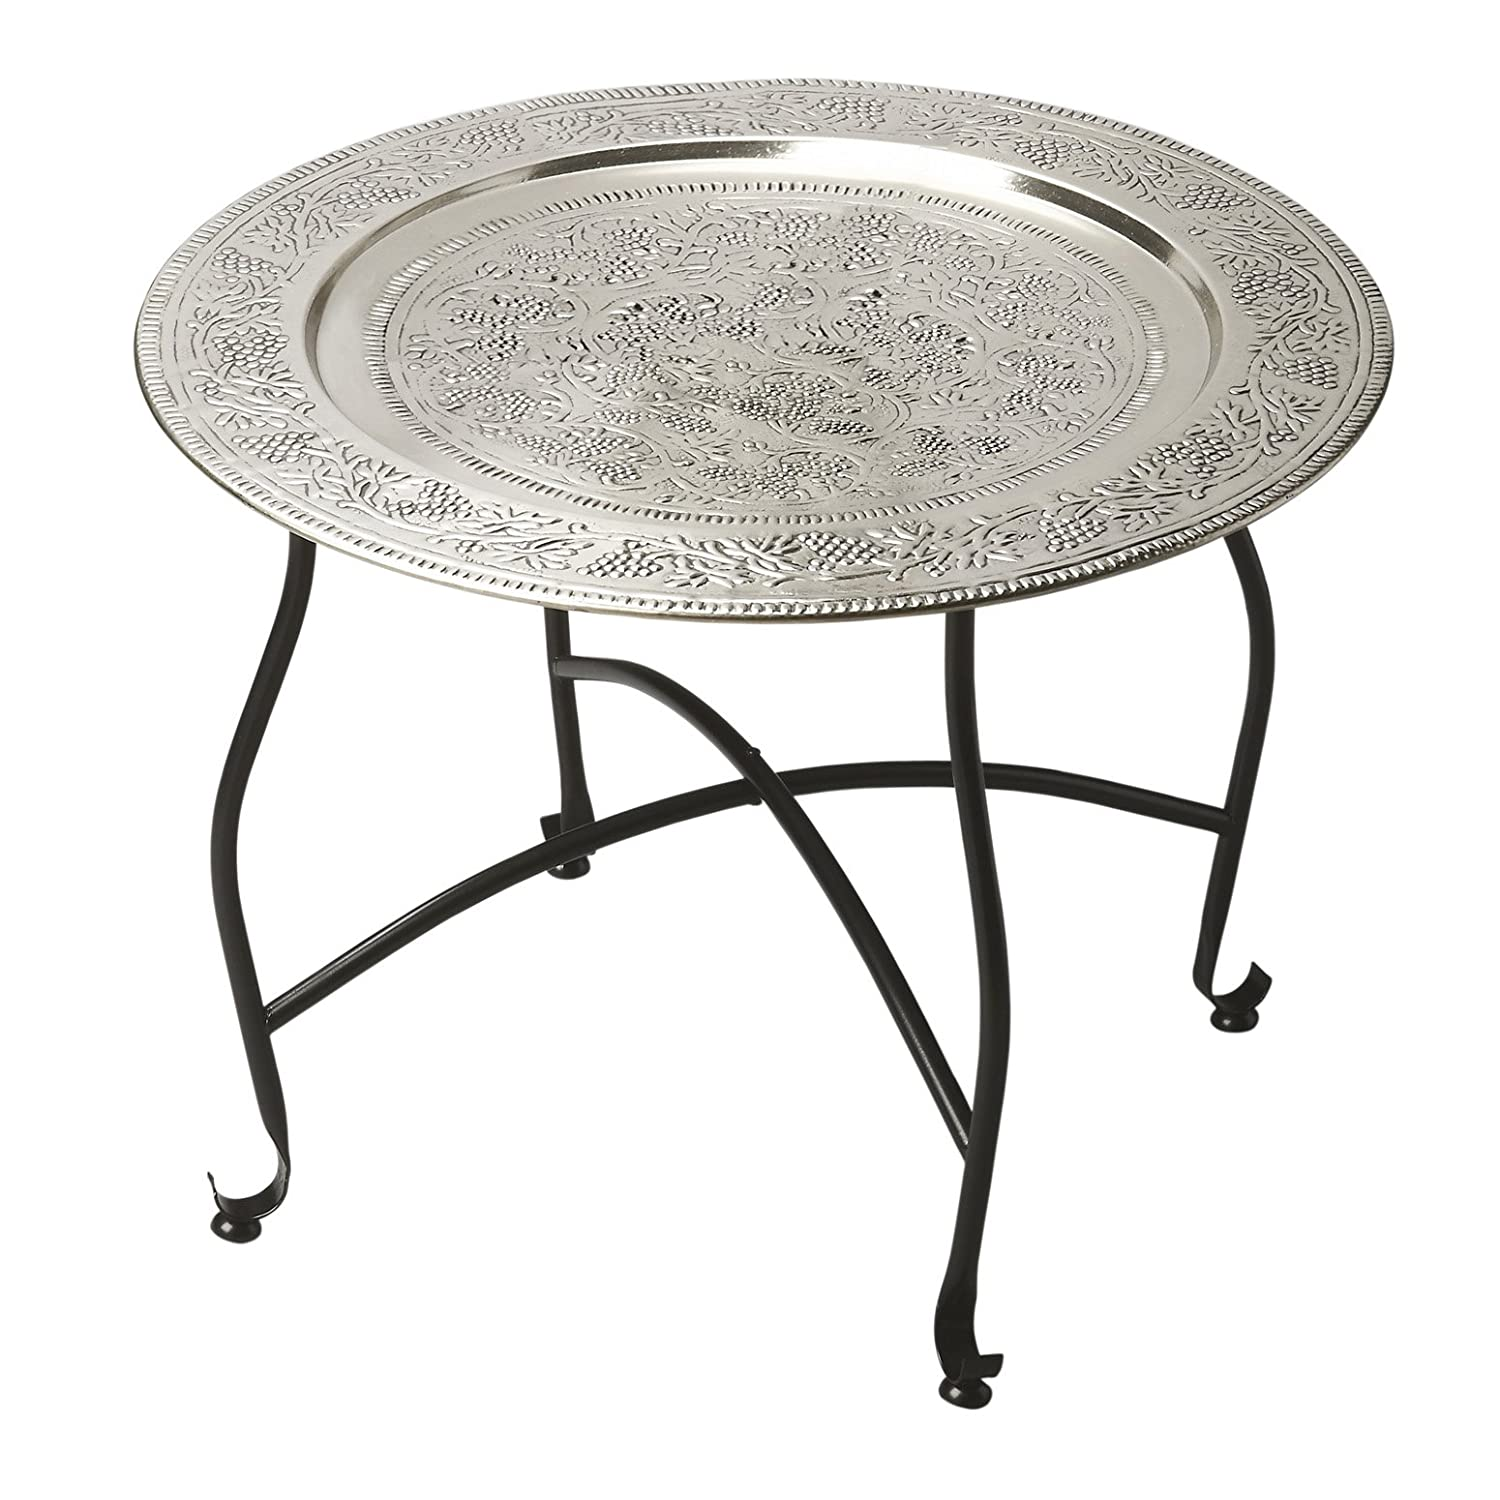 Amazon.com: Kensington Row Furniture Collection Coffee Tables   Marrakesh  Embossed Round Metal Coffee Table   Tray Table   Moroccan Tea Table:  Kitchen U0026 ...